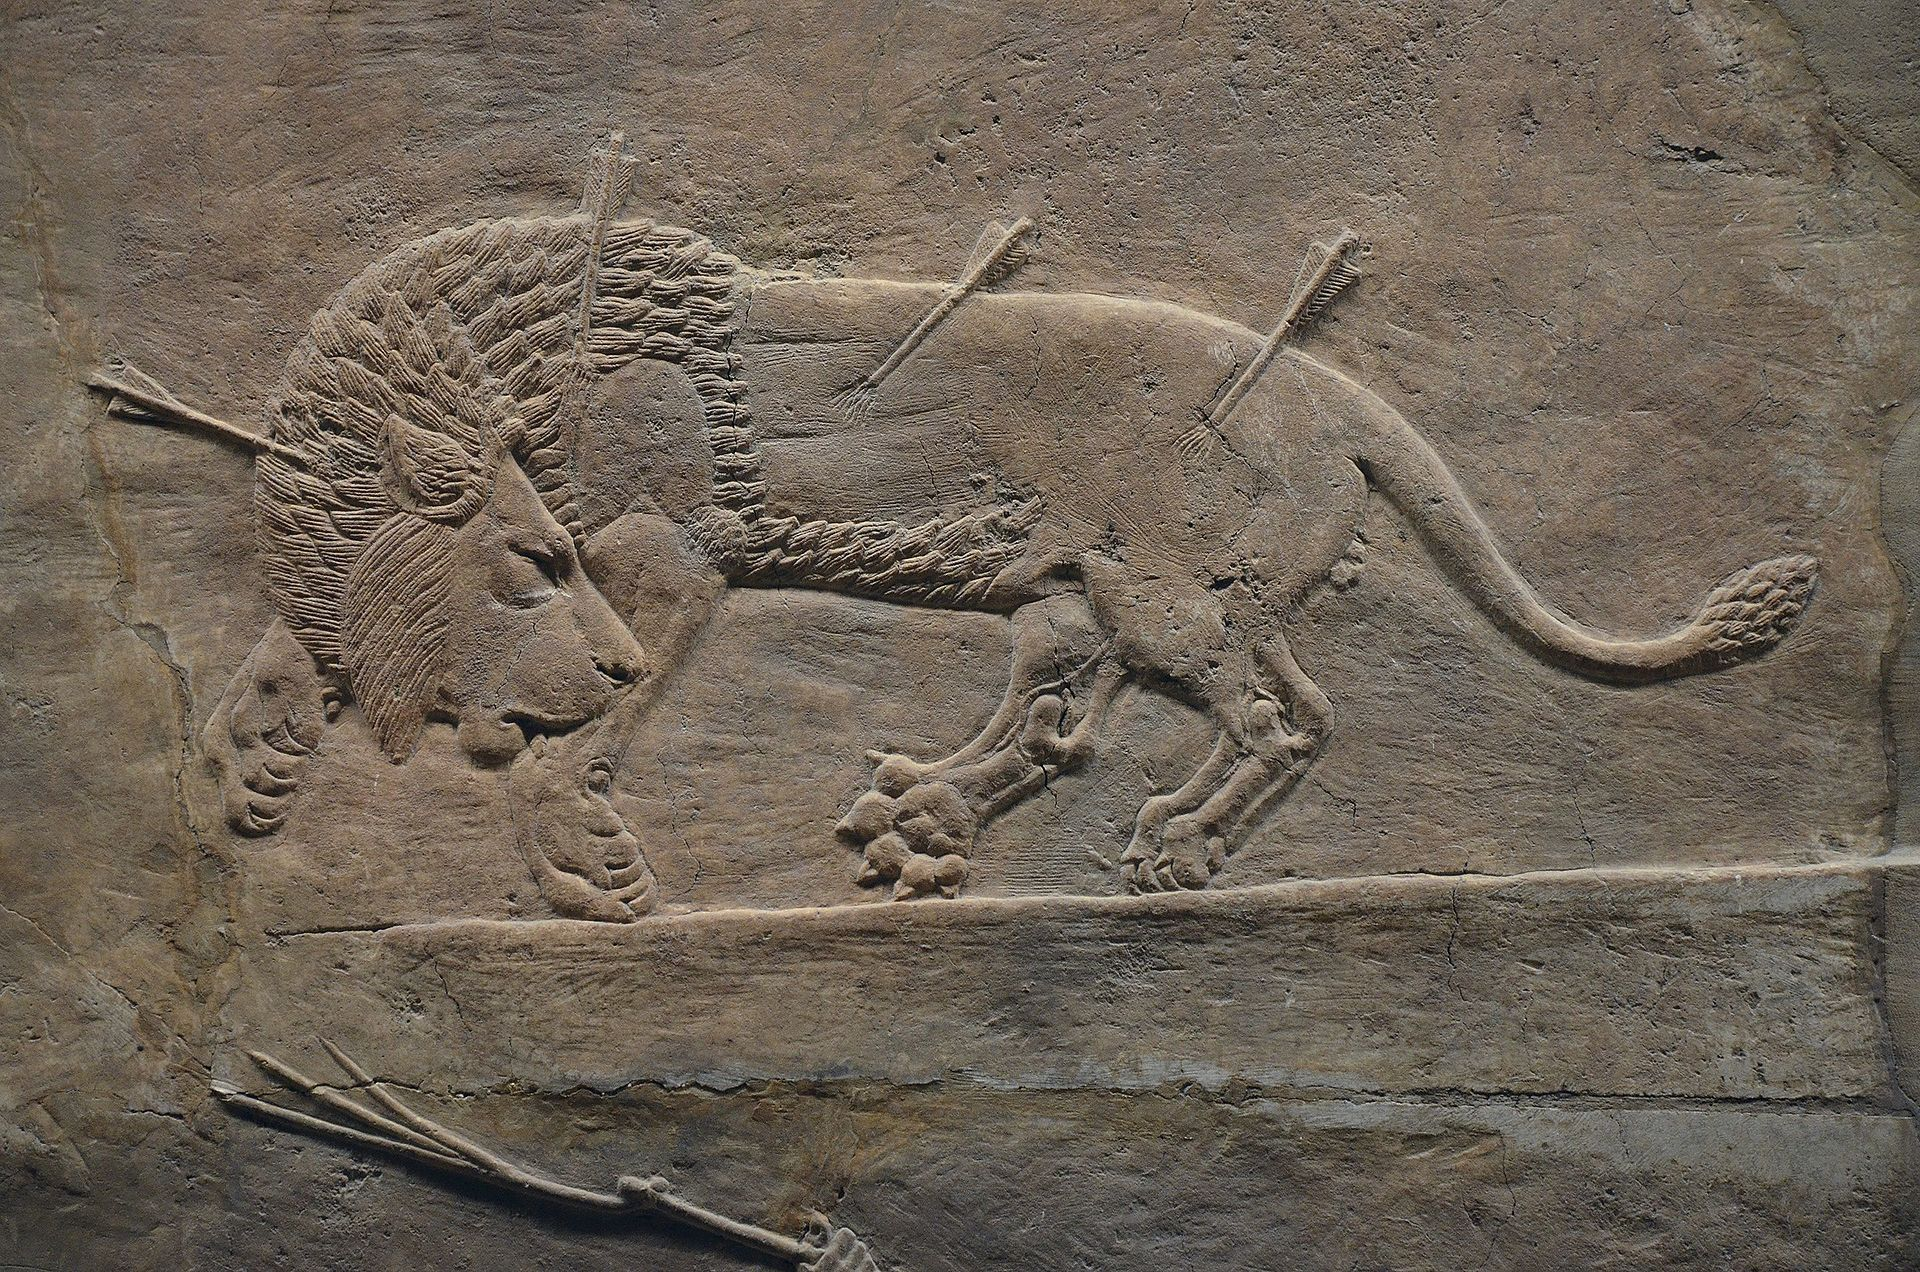 Sculpted Reliefs Depicting Ashurbanipal The Last Great Assyrian King Hunting Lions Gypsum Hall Relief From The British Museum Ancient Art Ancient Near East